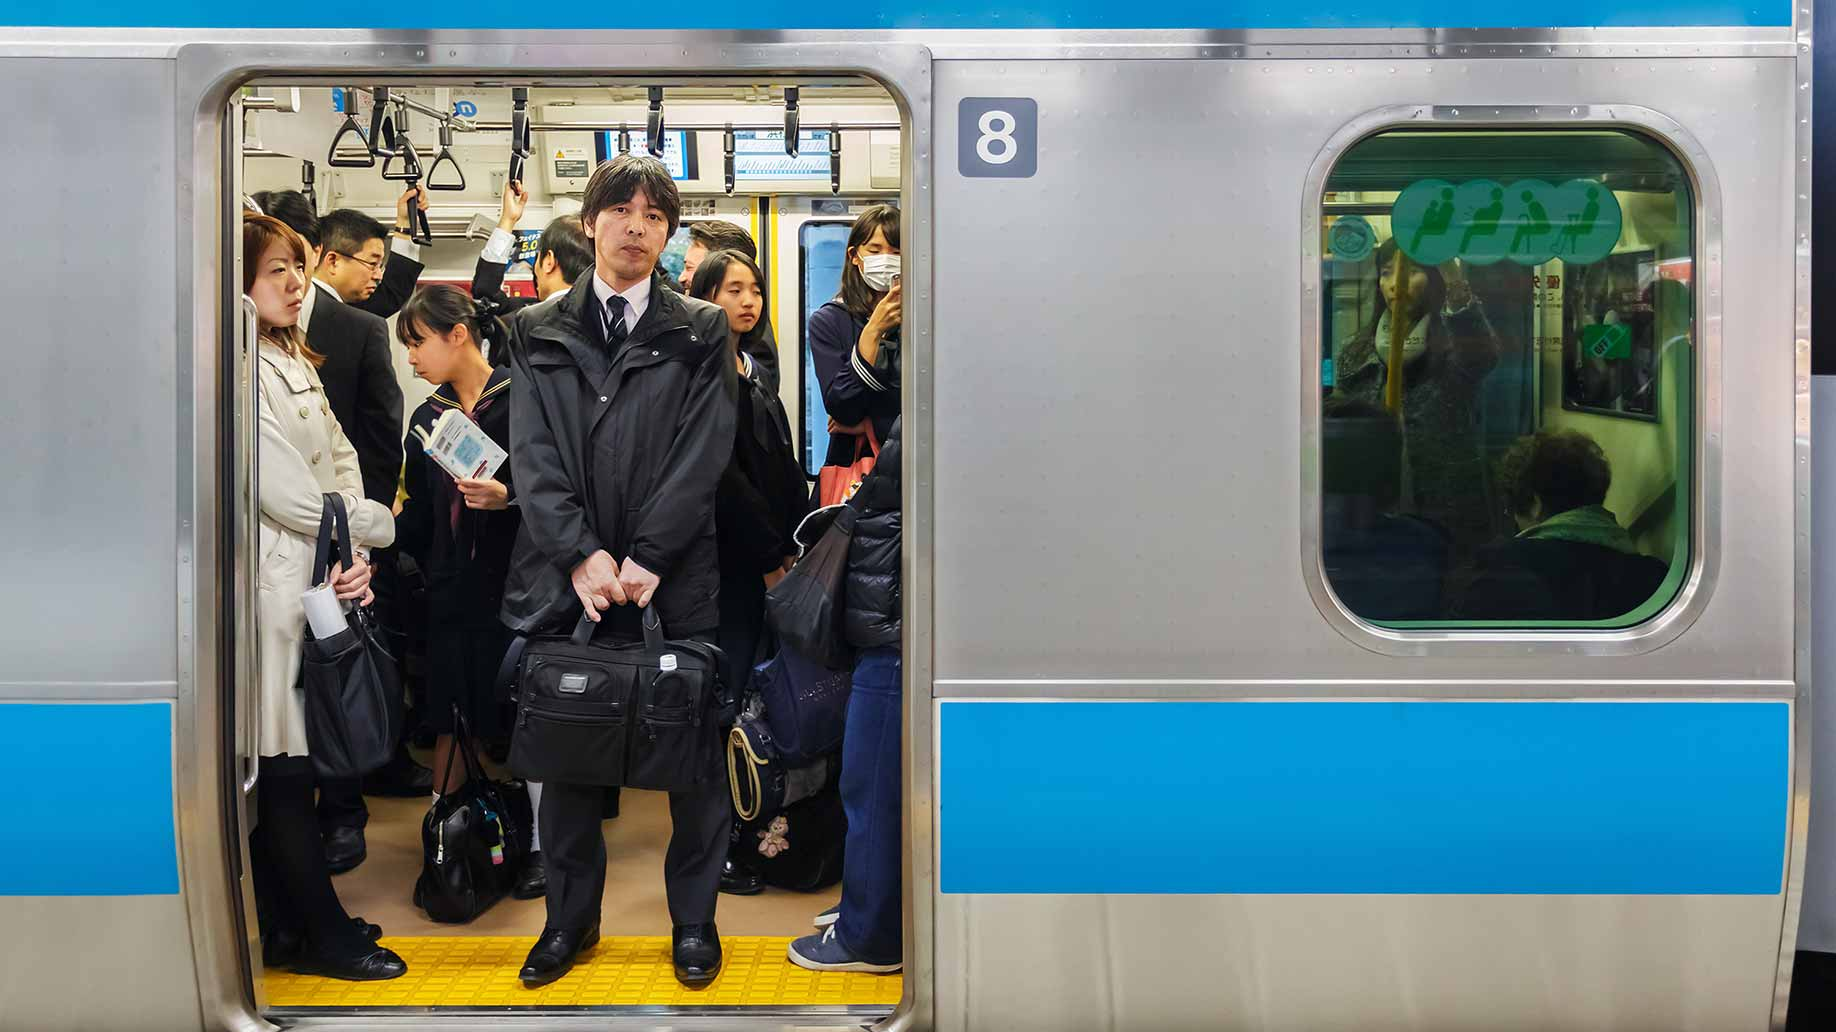 passengers on a commuter train in tokyo, japan public transportation